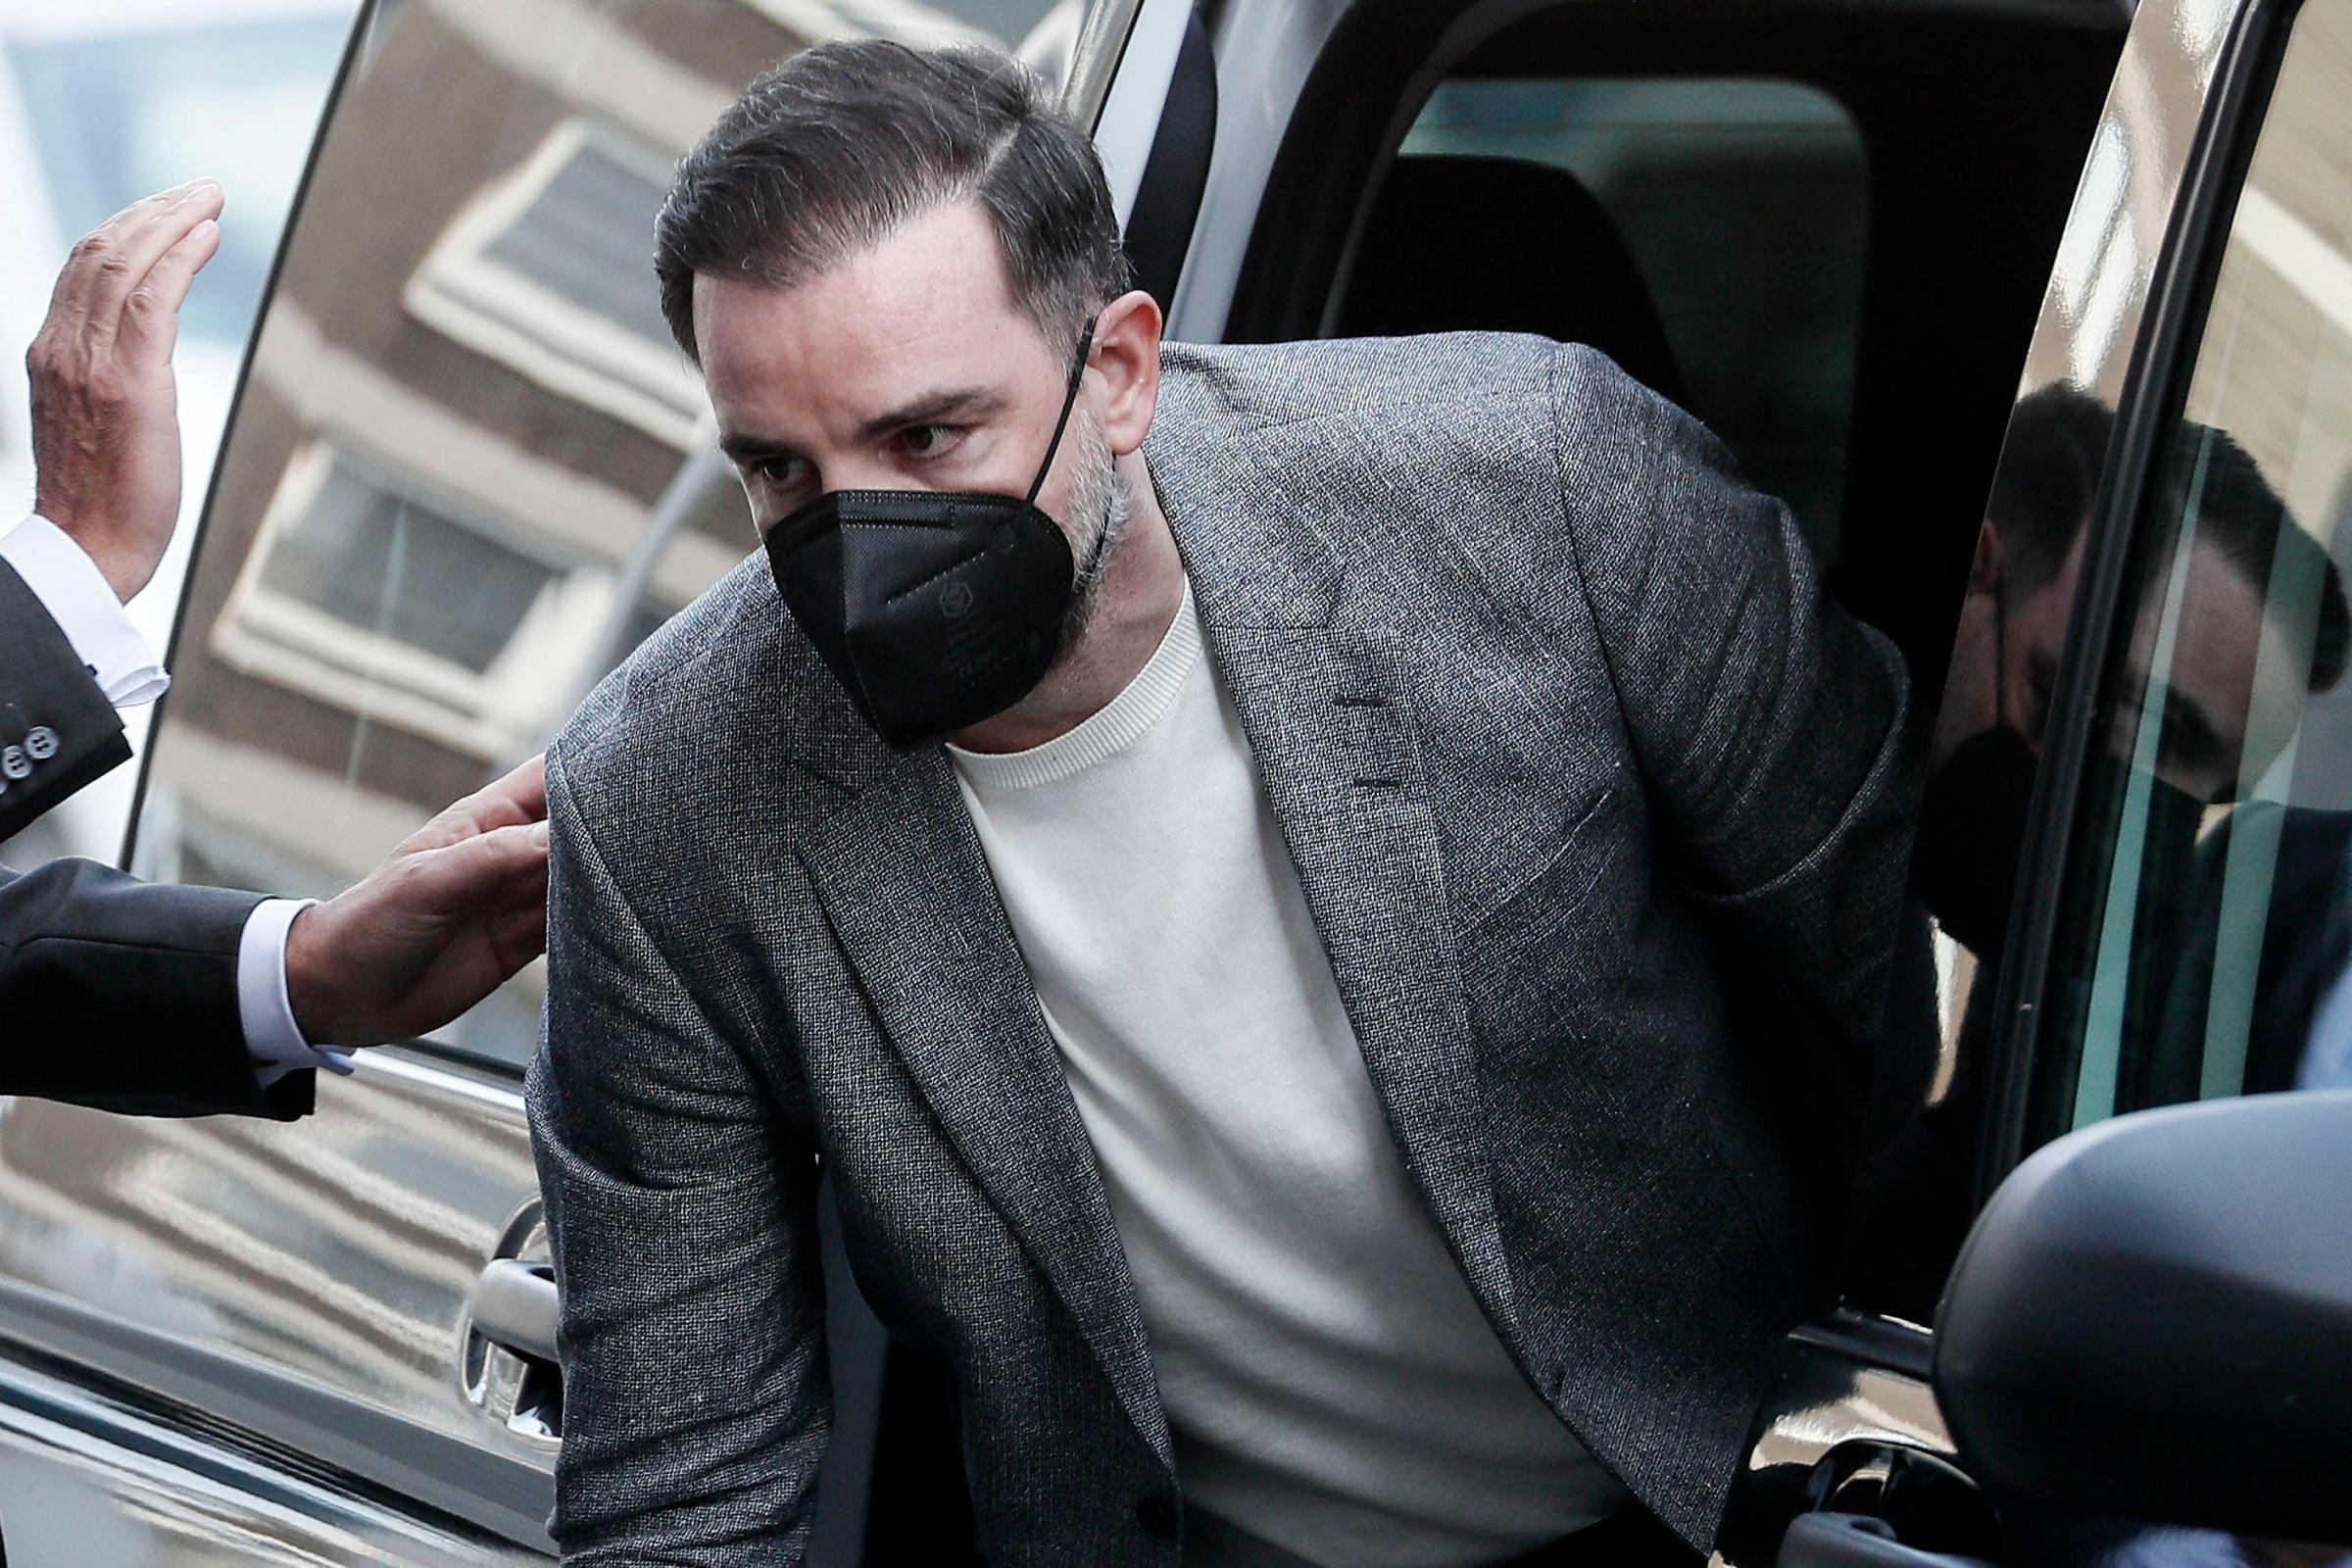 Ex-Germany defender Metzelder given suspended prison sentence over child pornography charges - Tatahfonewsarena